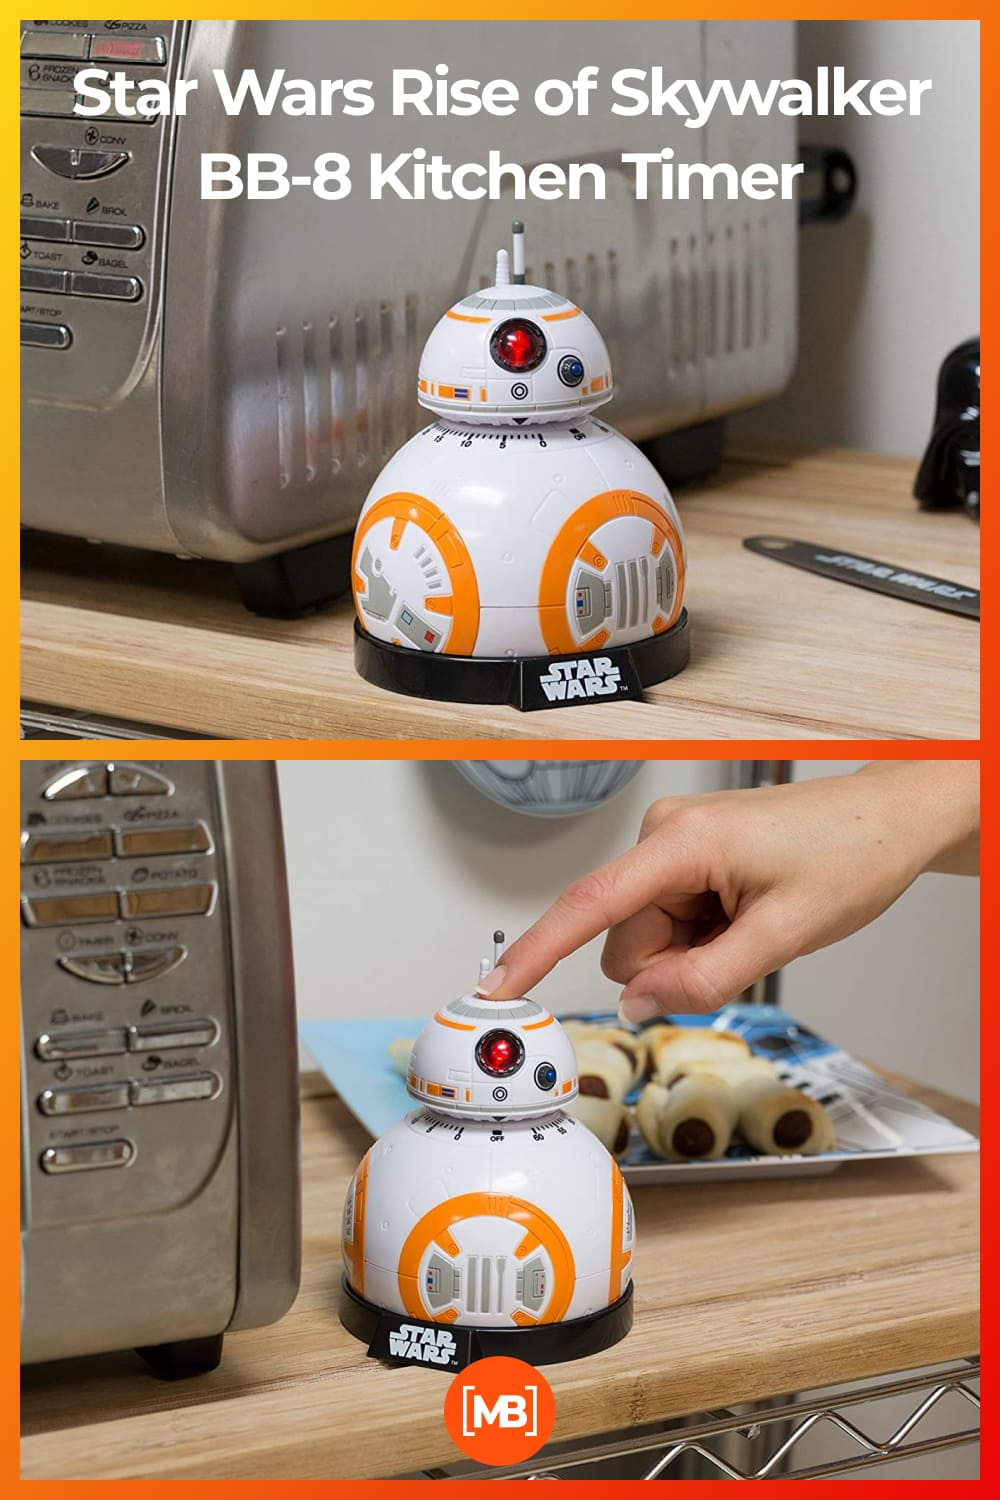 Have a trusty droid companion at home with the Star Wars BB-8 Kitchen Timer with lights and sounds.